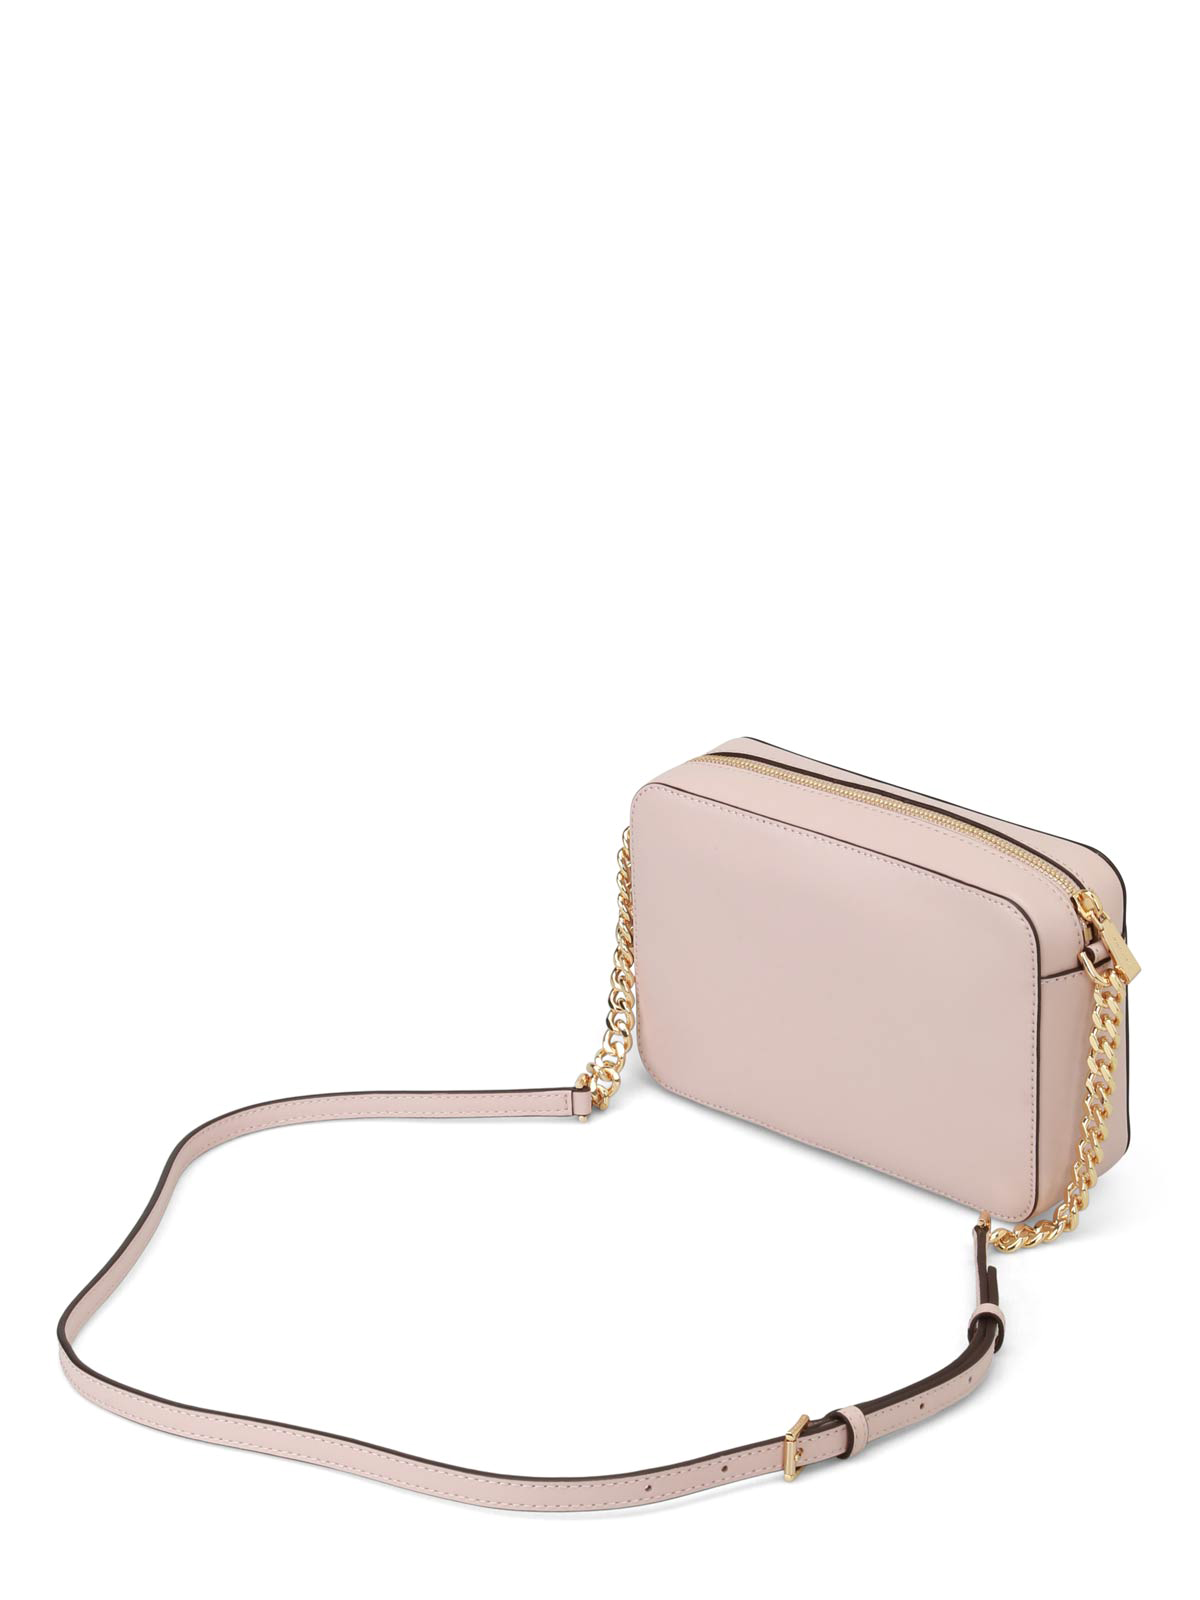 ce75c757f8200 iKRIX MICHAEL KORS  cross body bags - Ginny Love pink camera bag